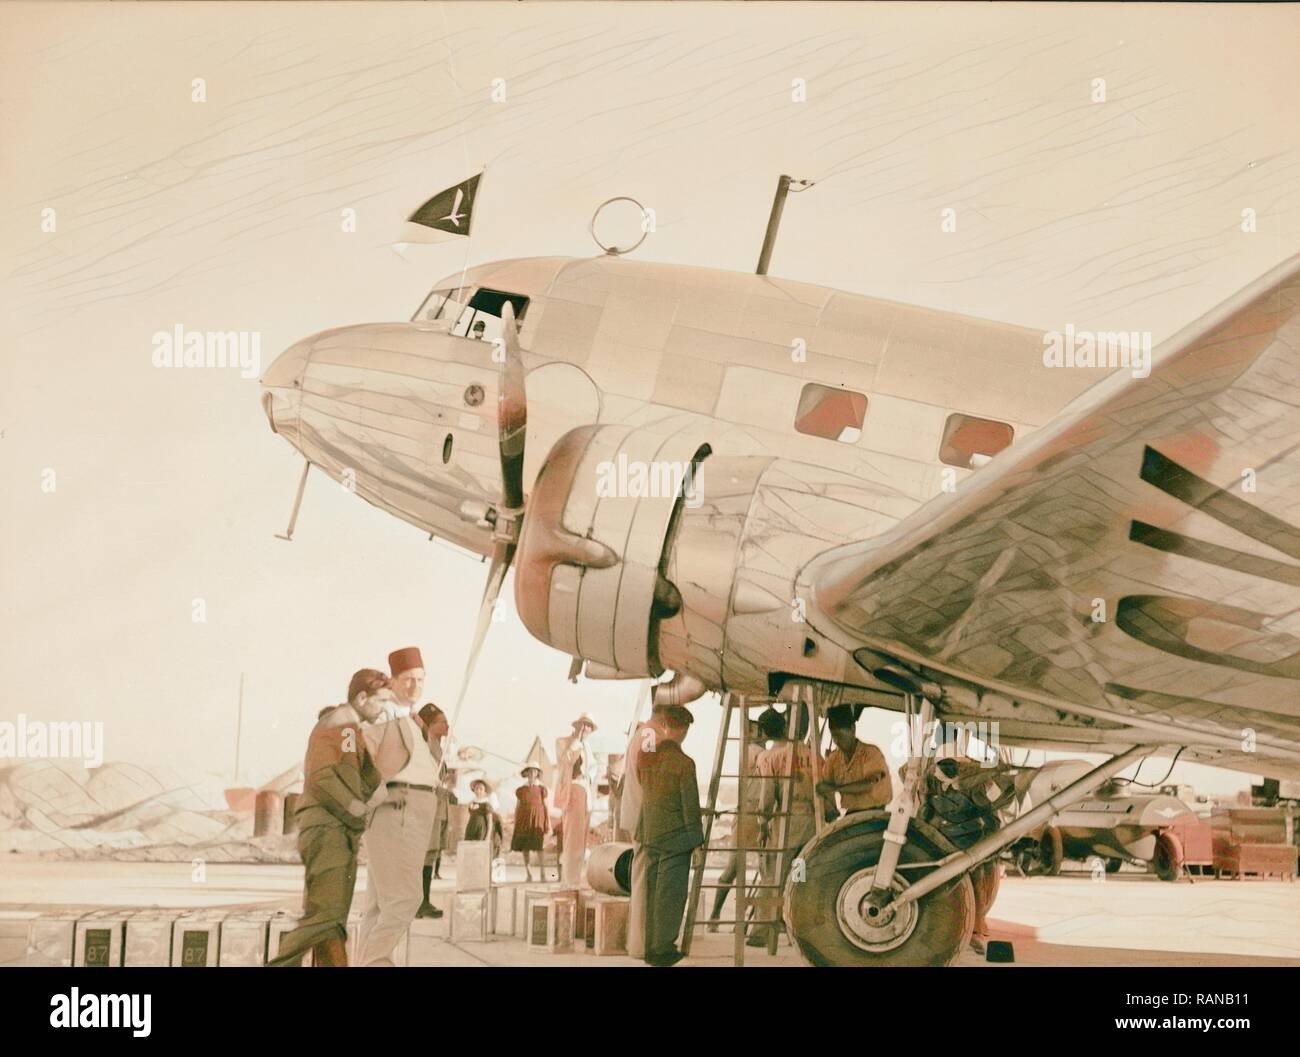 Aeroplanes on Lydda Air Port. 1934, Israel, Lod. Reimagined by Gibon. Classic art with a modern twist reimagined - Stock Image